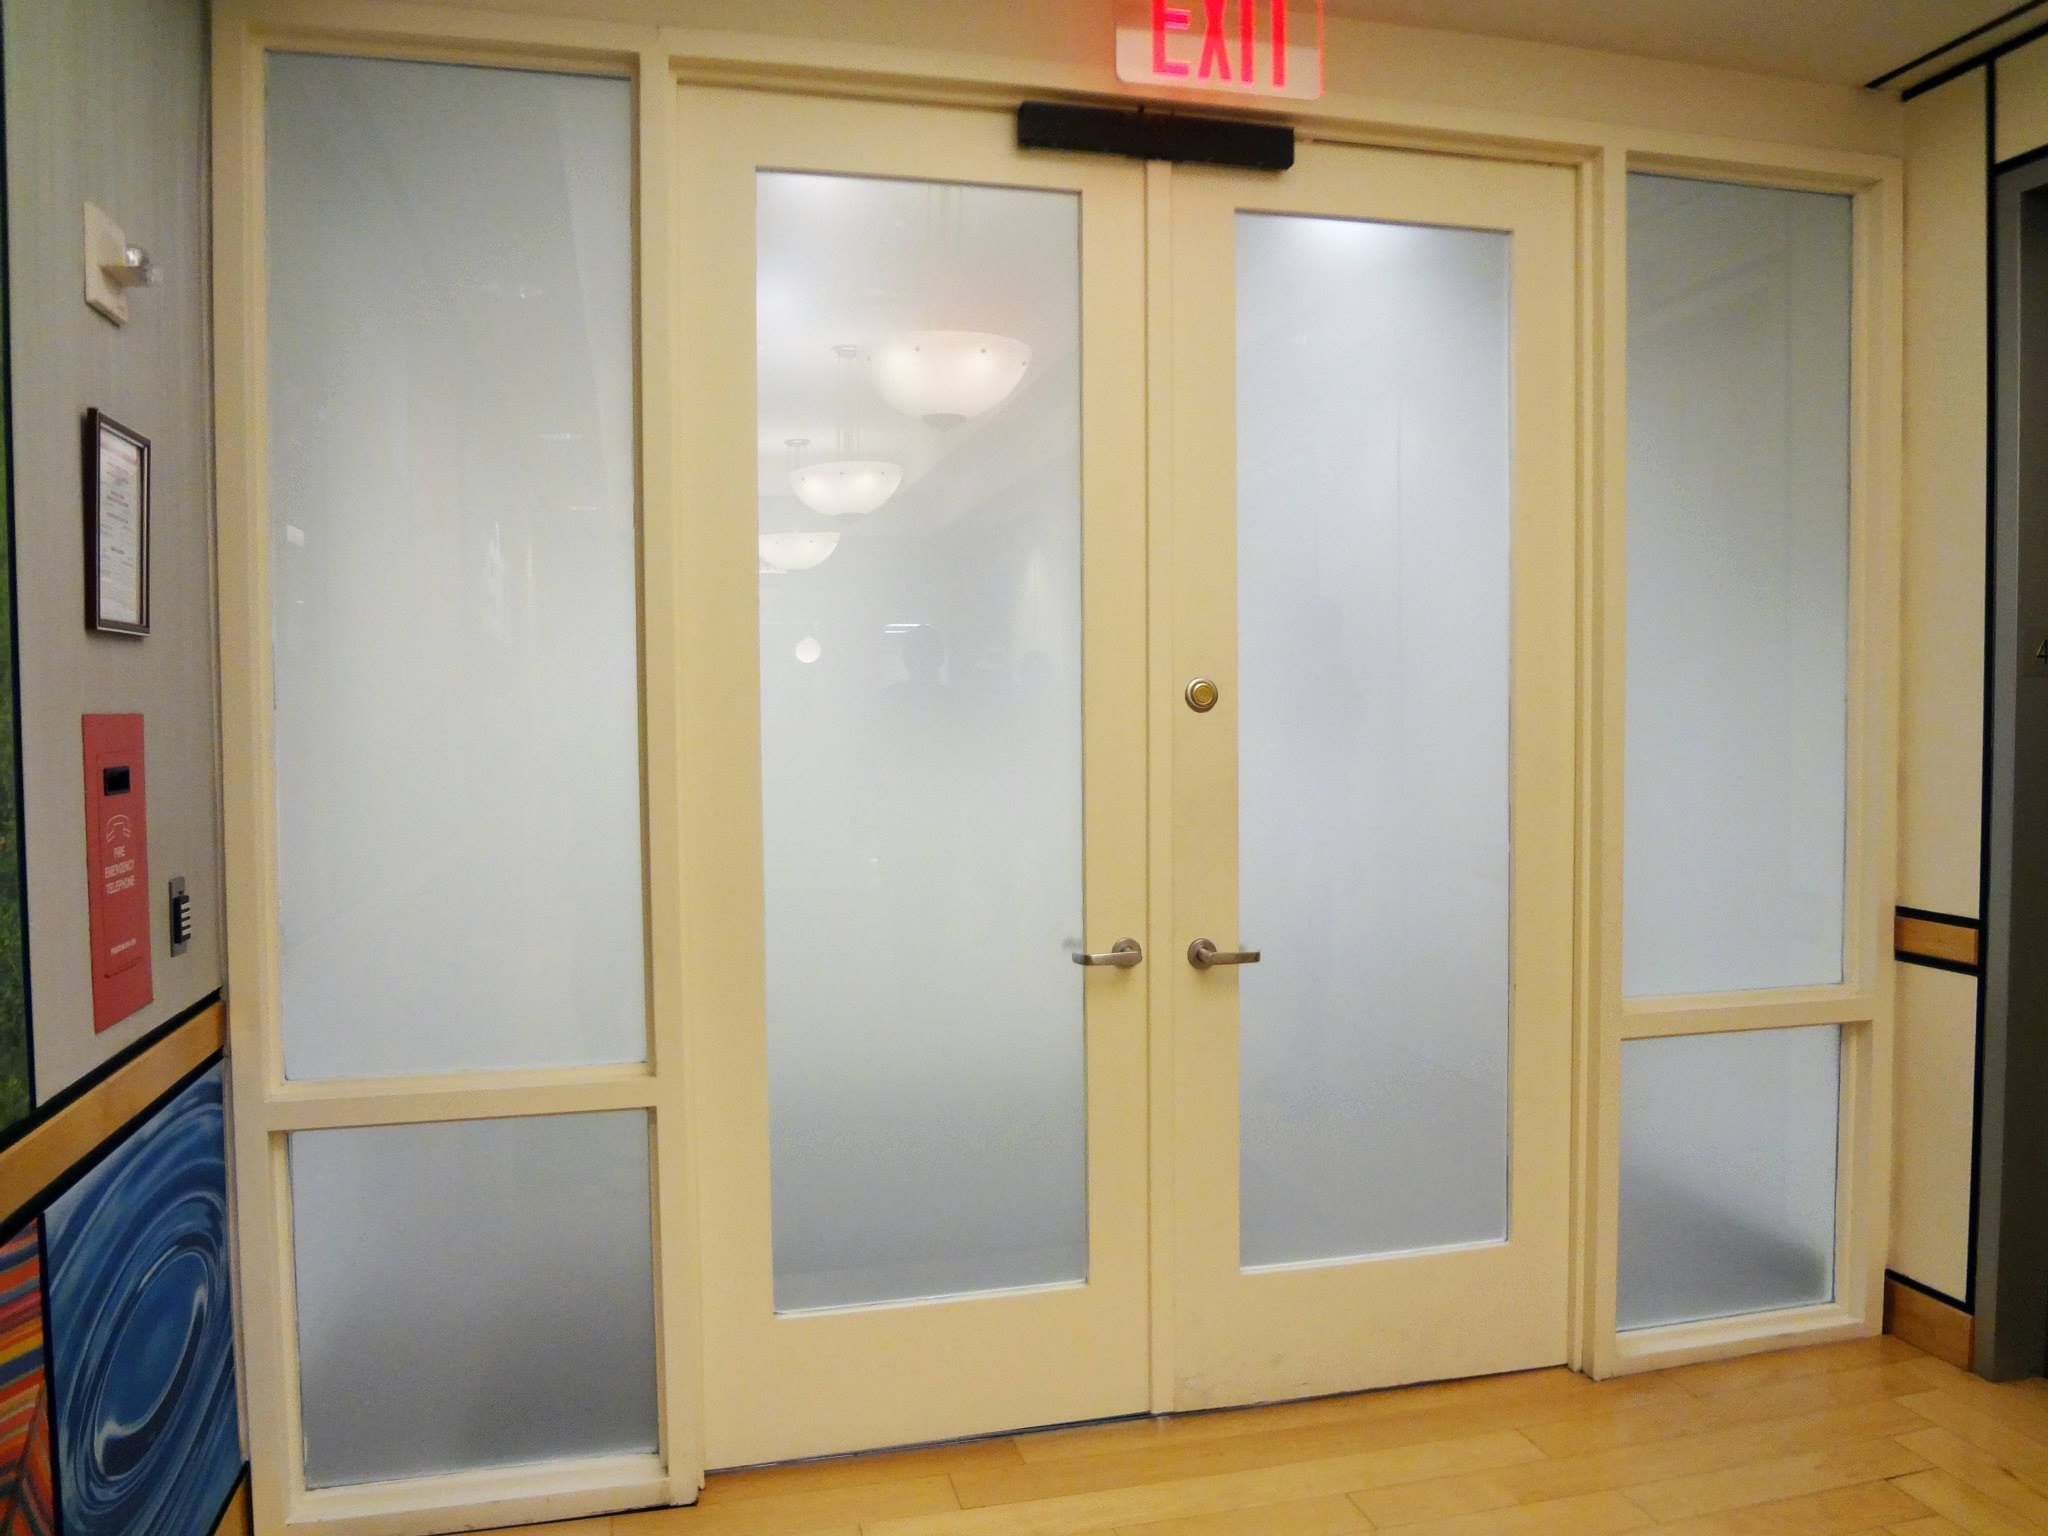 Custom Frosted Film Covering For Glass Door Entryway In Nyc For